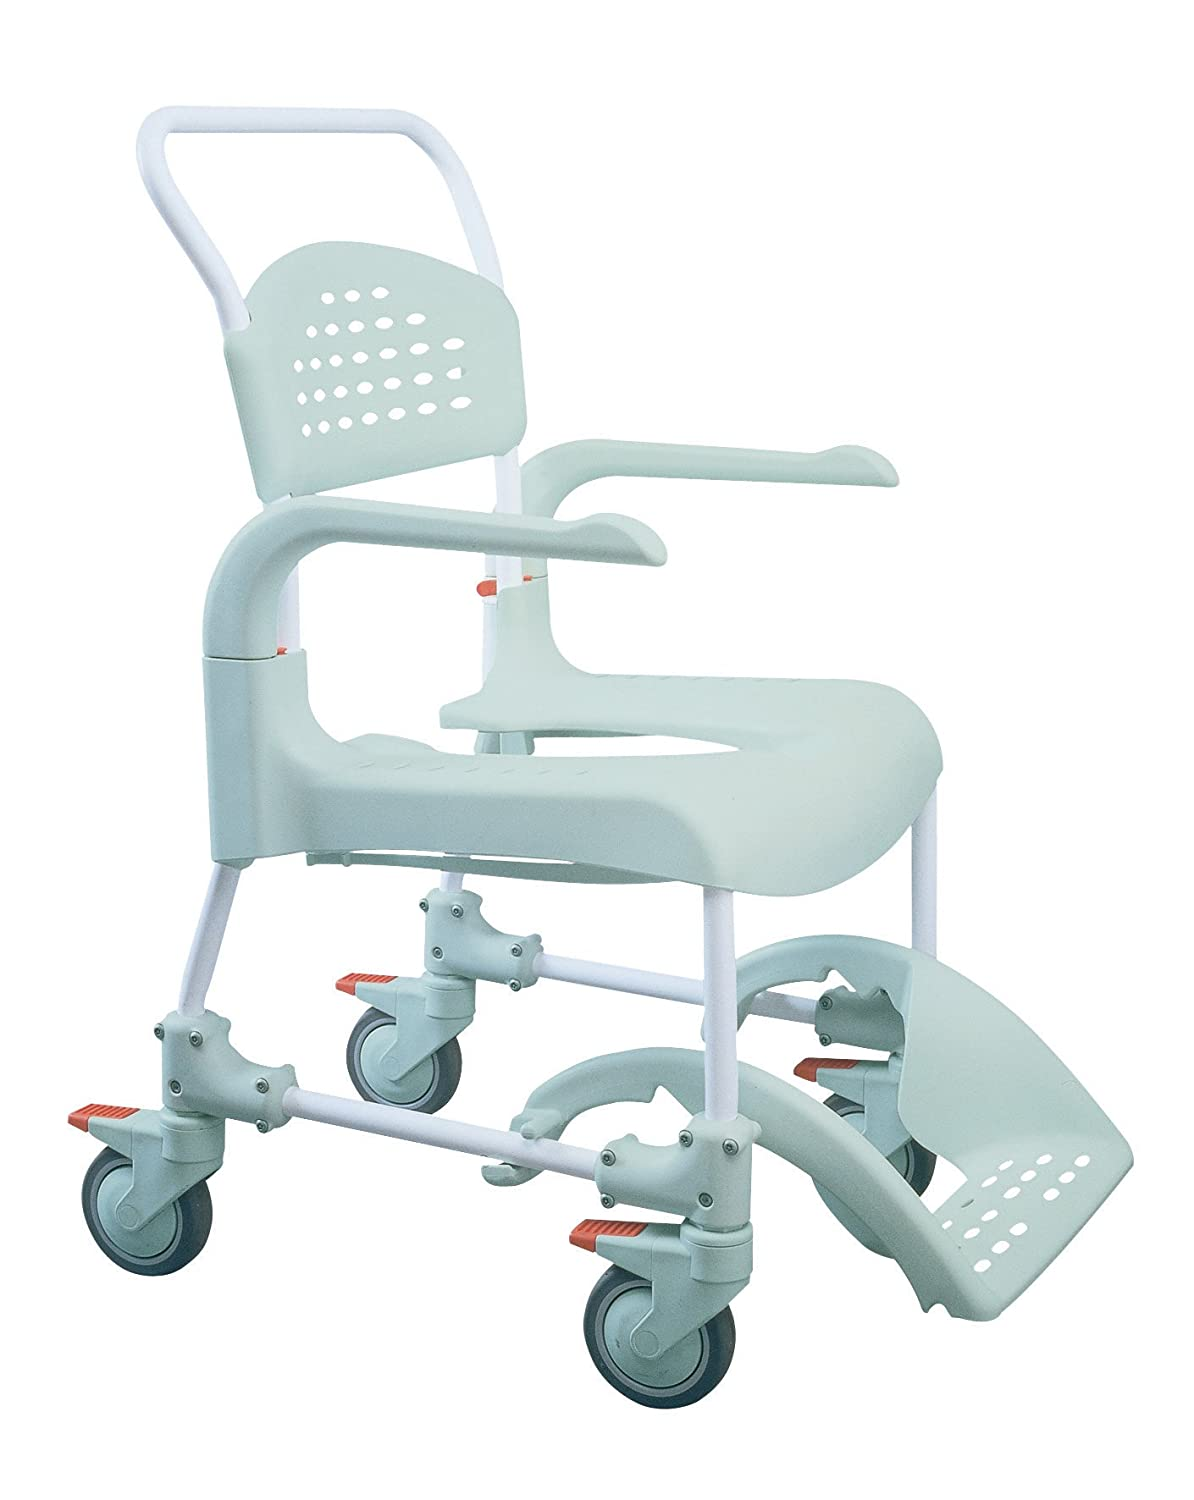 Etac Clean Shower Commode Chair Clean 49 cm: Amazon.co.uk: Health ...